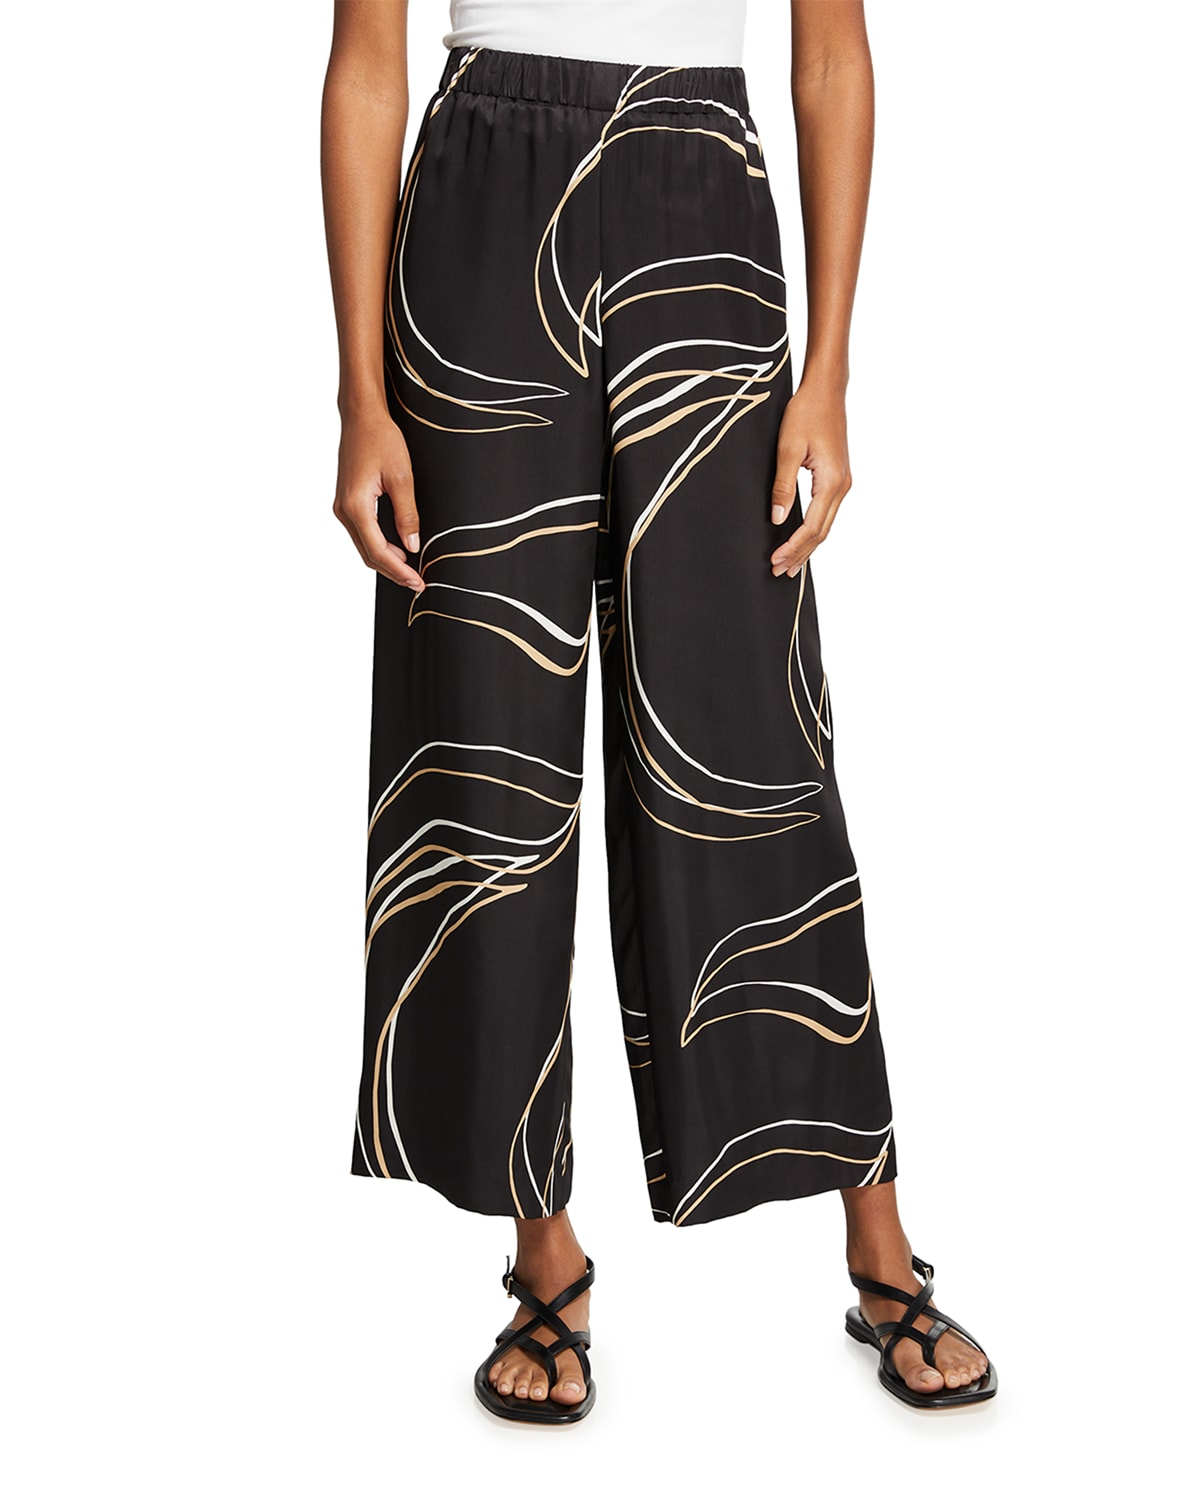 Riverside Pull-On Ankle Pant